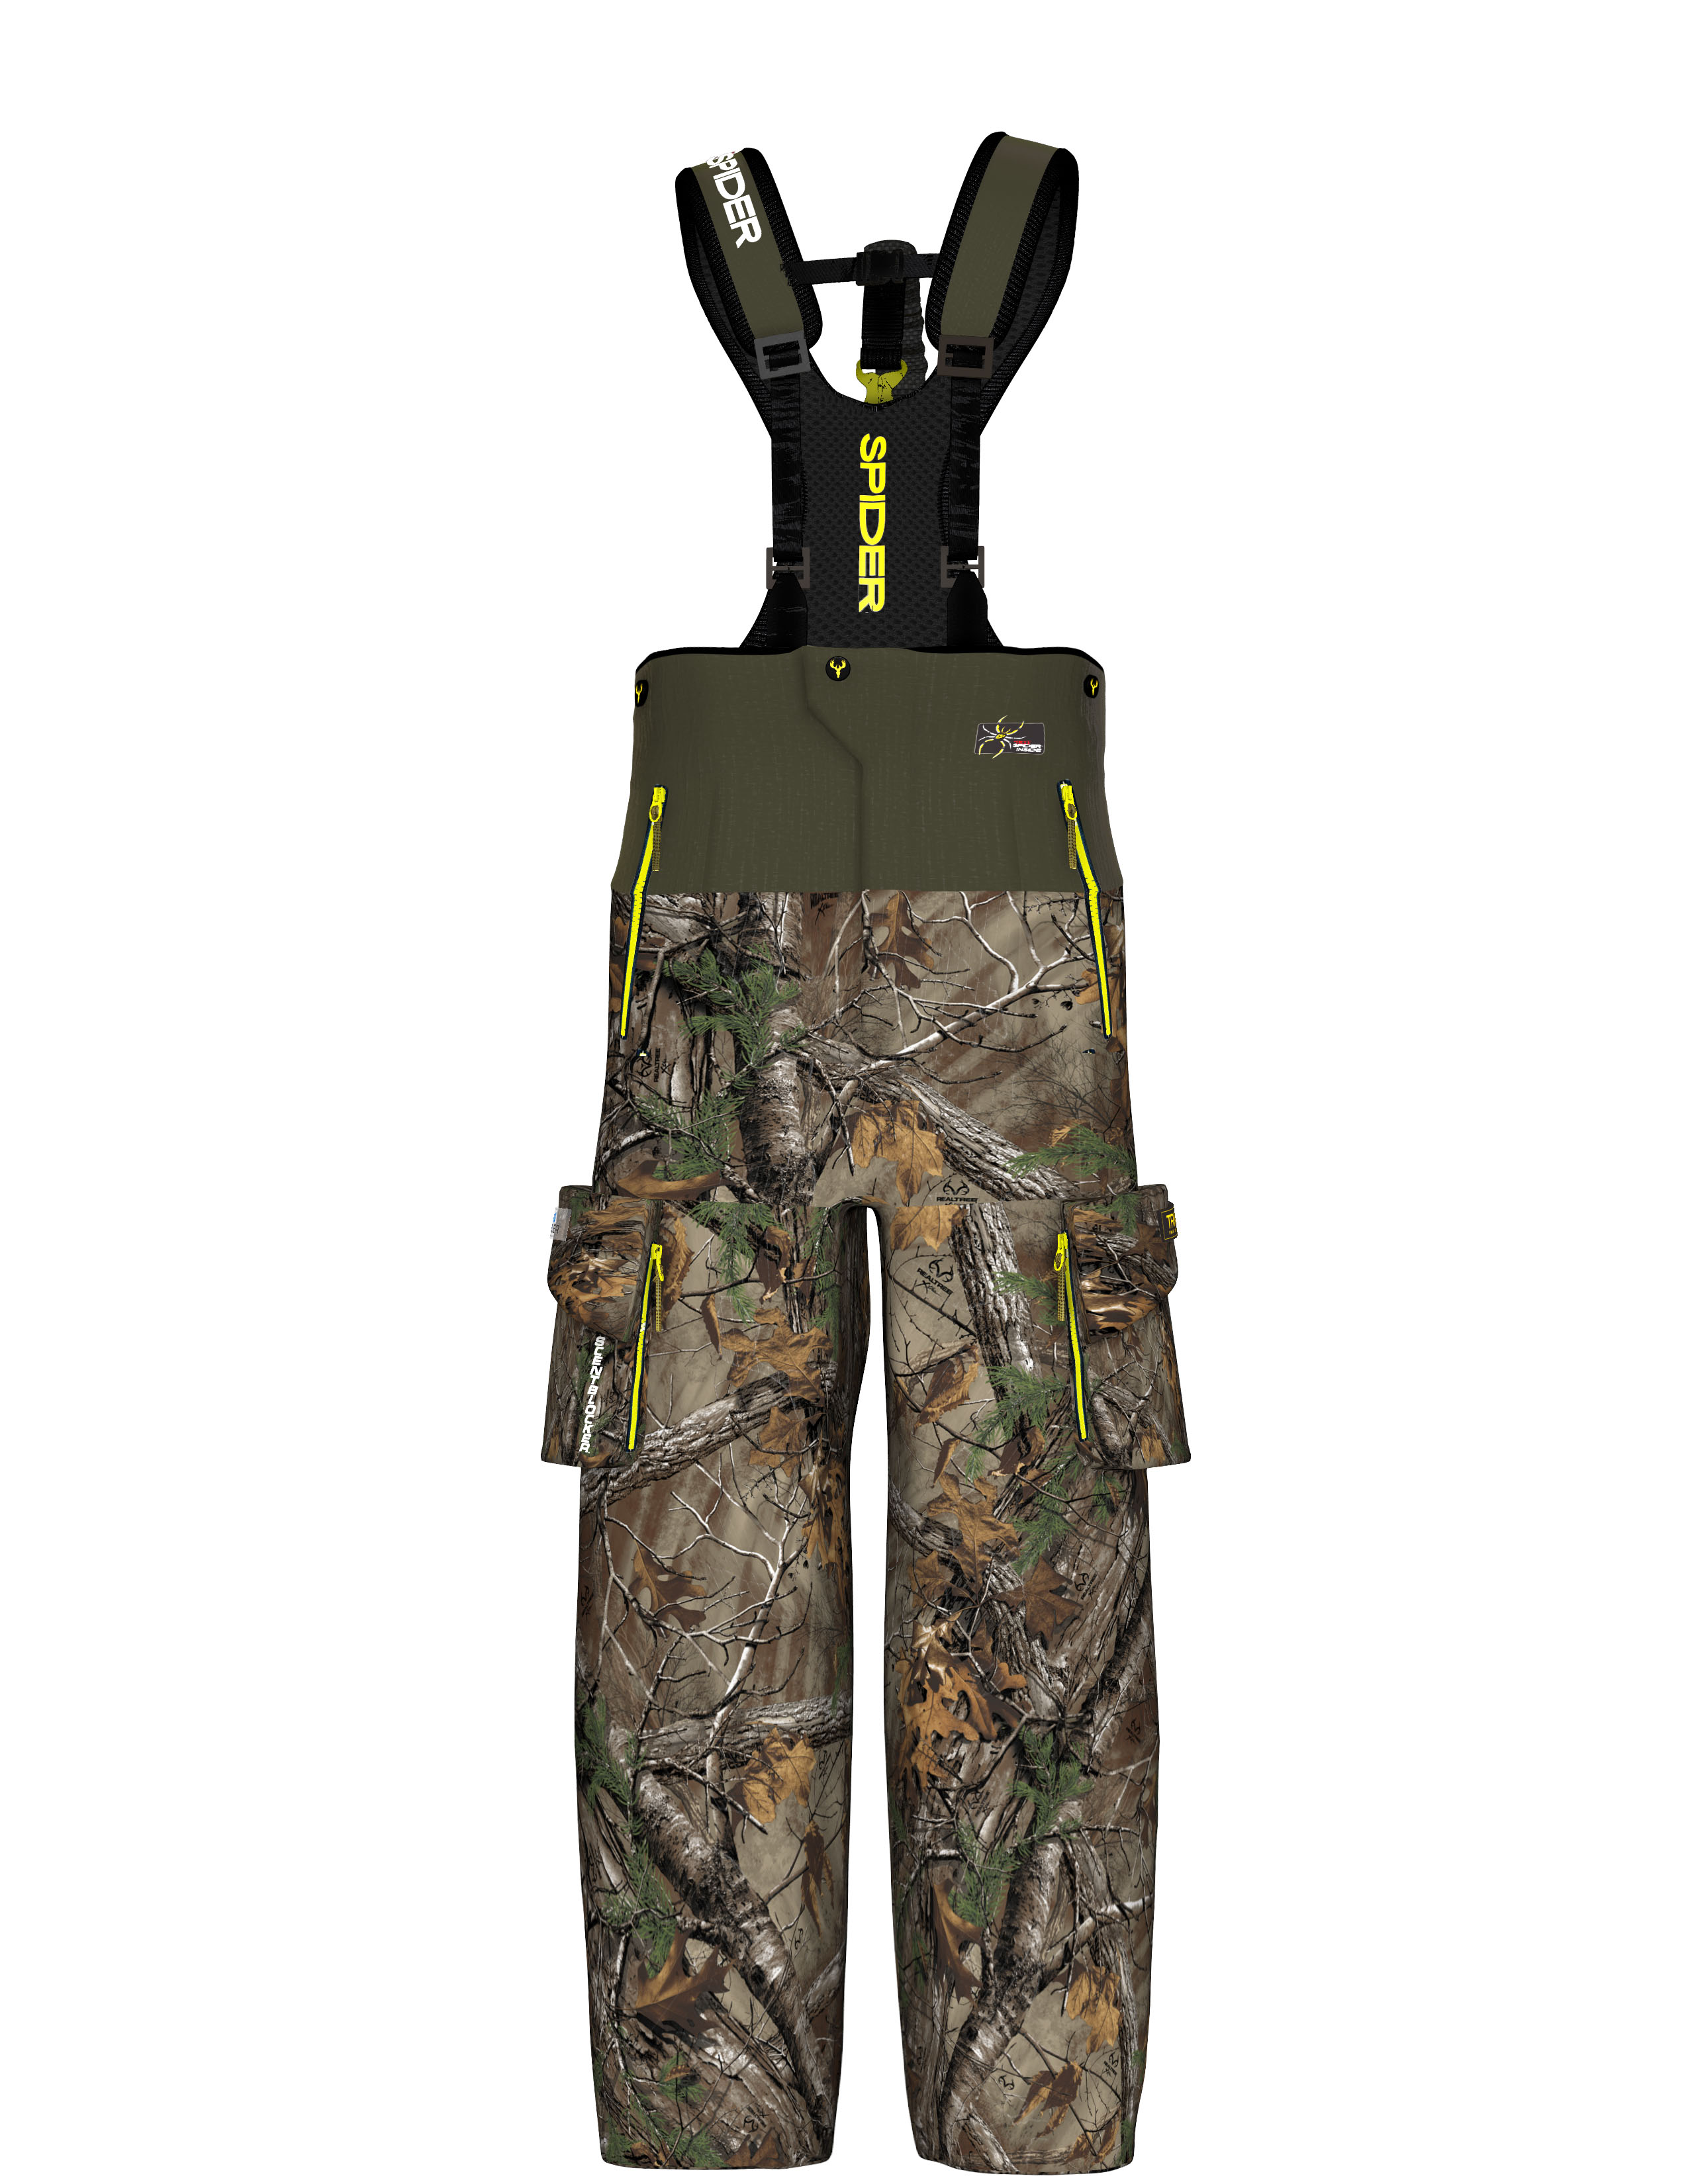 8335dec1e8a1c ScentBlocker's SpiderWeb Shatters Conventional Thought | OutdoorHub